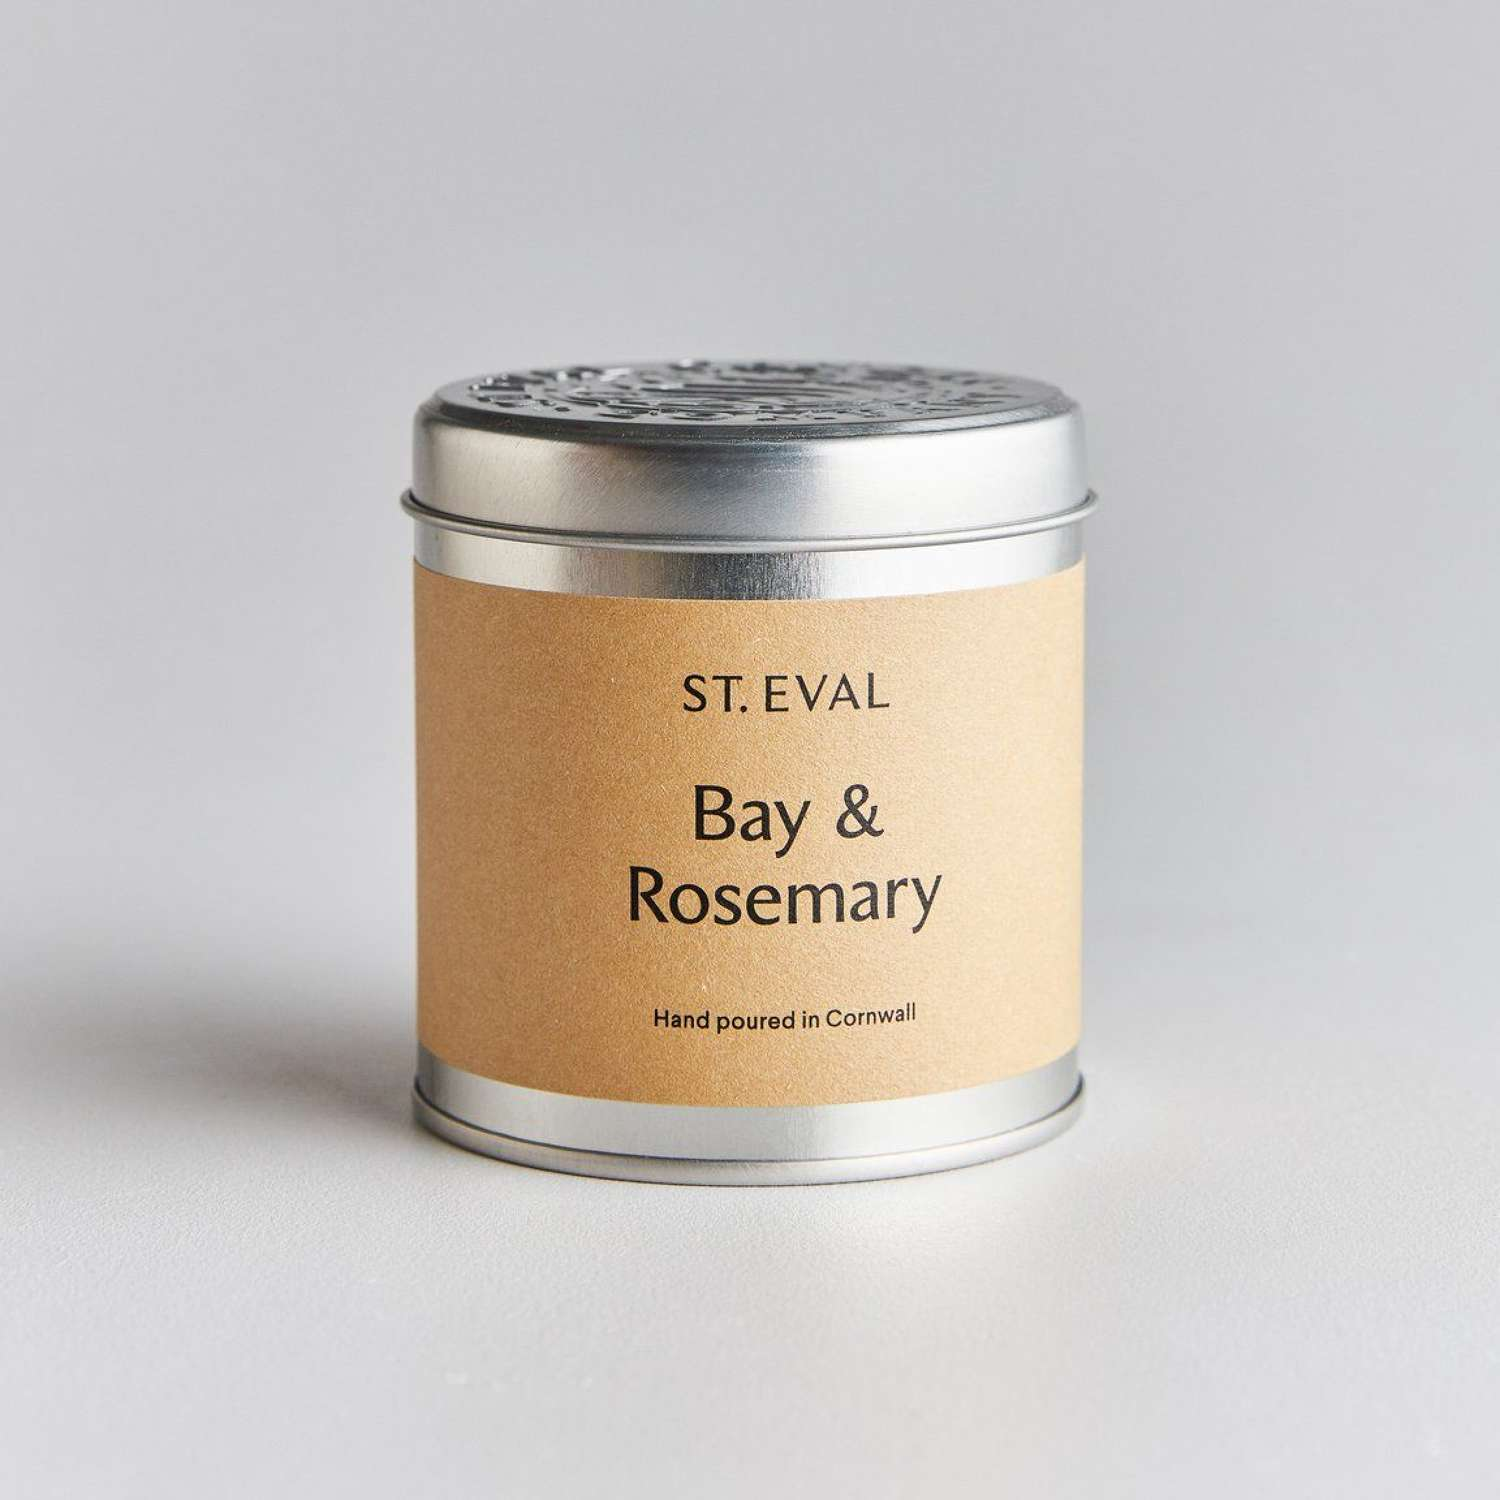 Bay & Rosemary tin scented candle